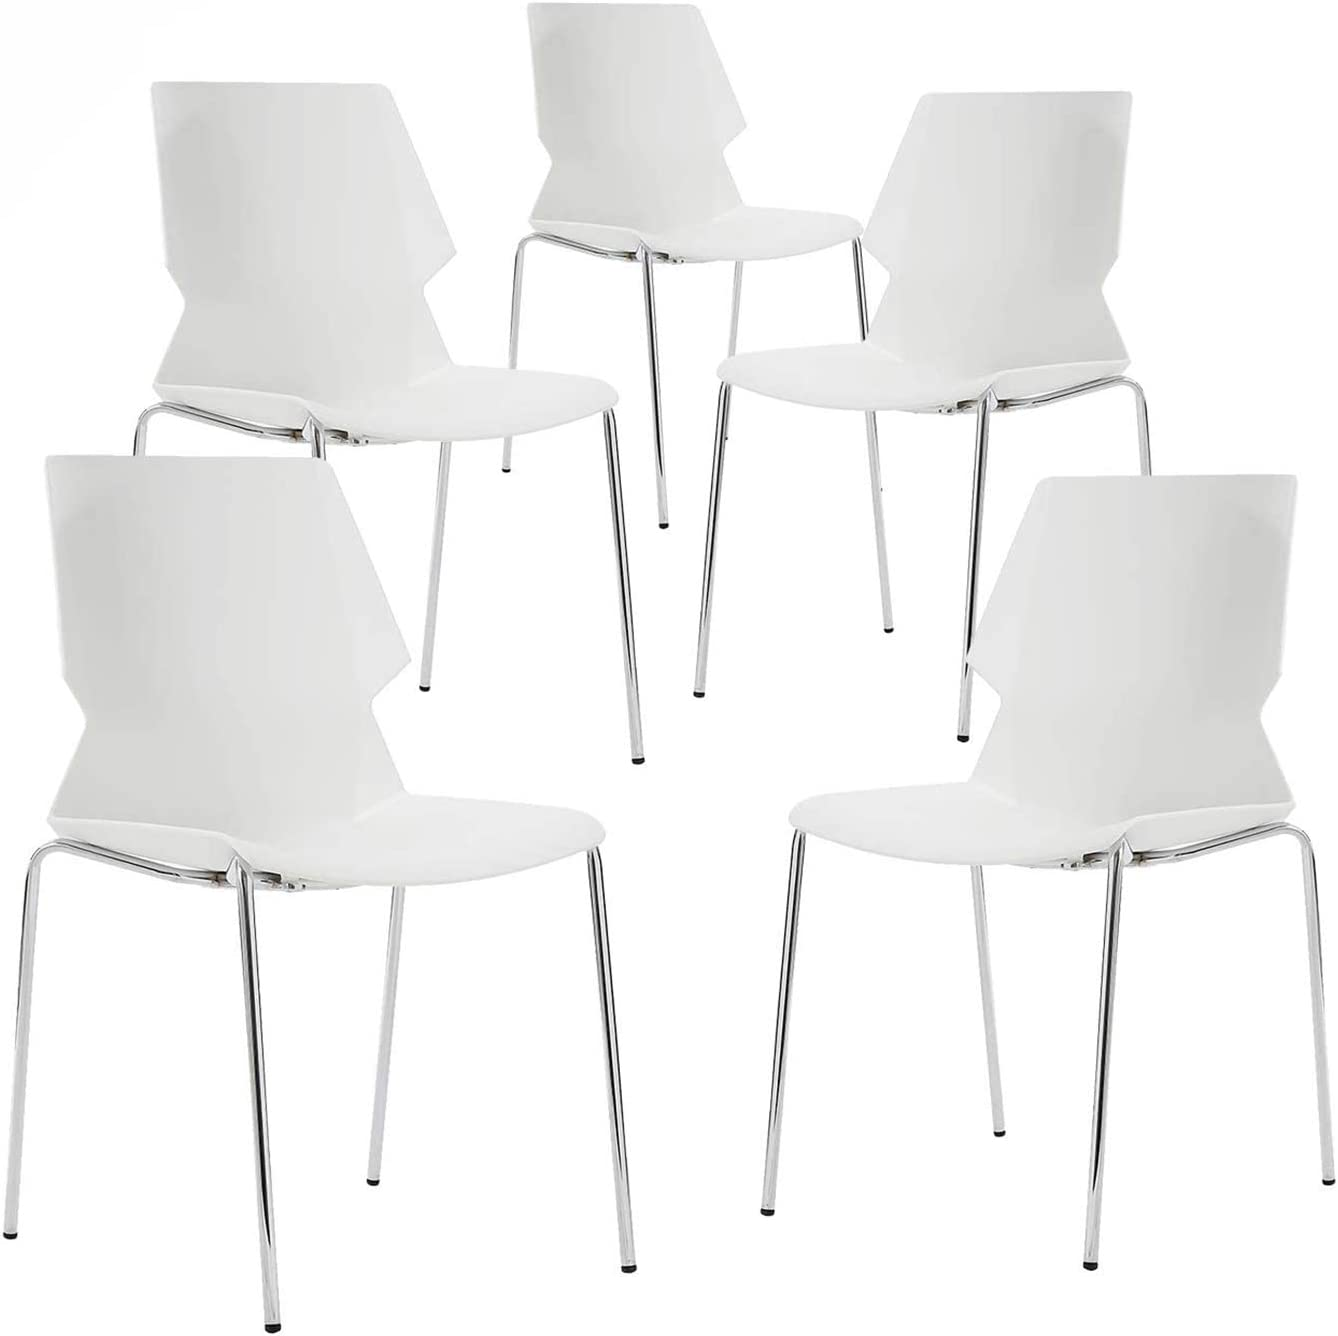 NOVIGO White Stacking Chair with Lumbar Support and Solid Steel Frame for School Church Training Conference Waiting Room Set of 5